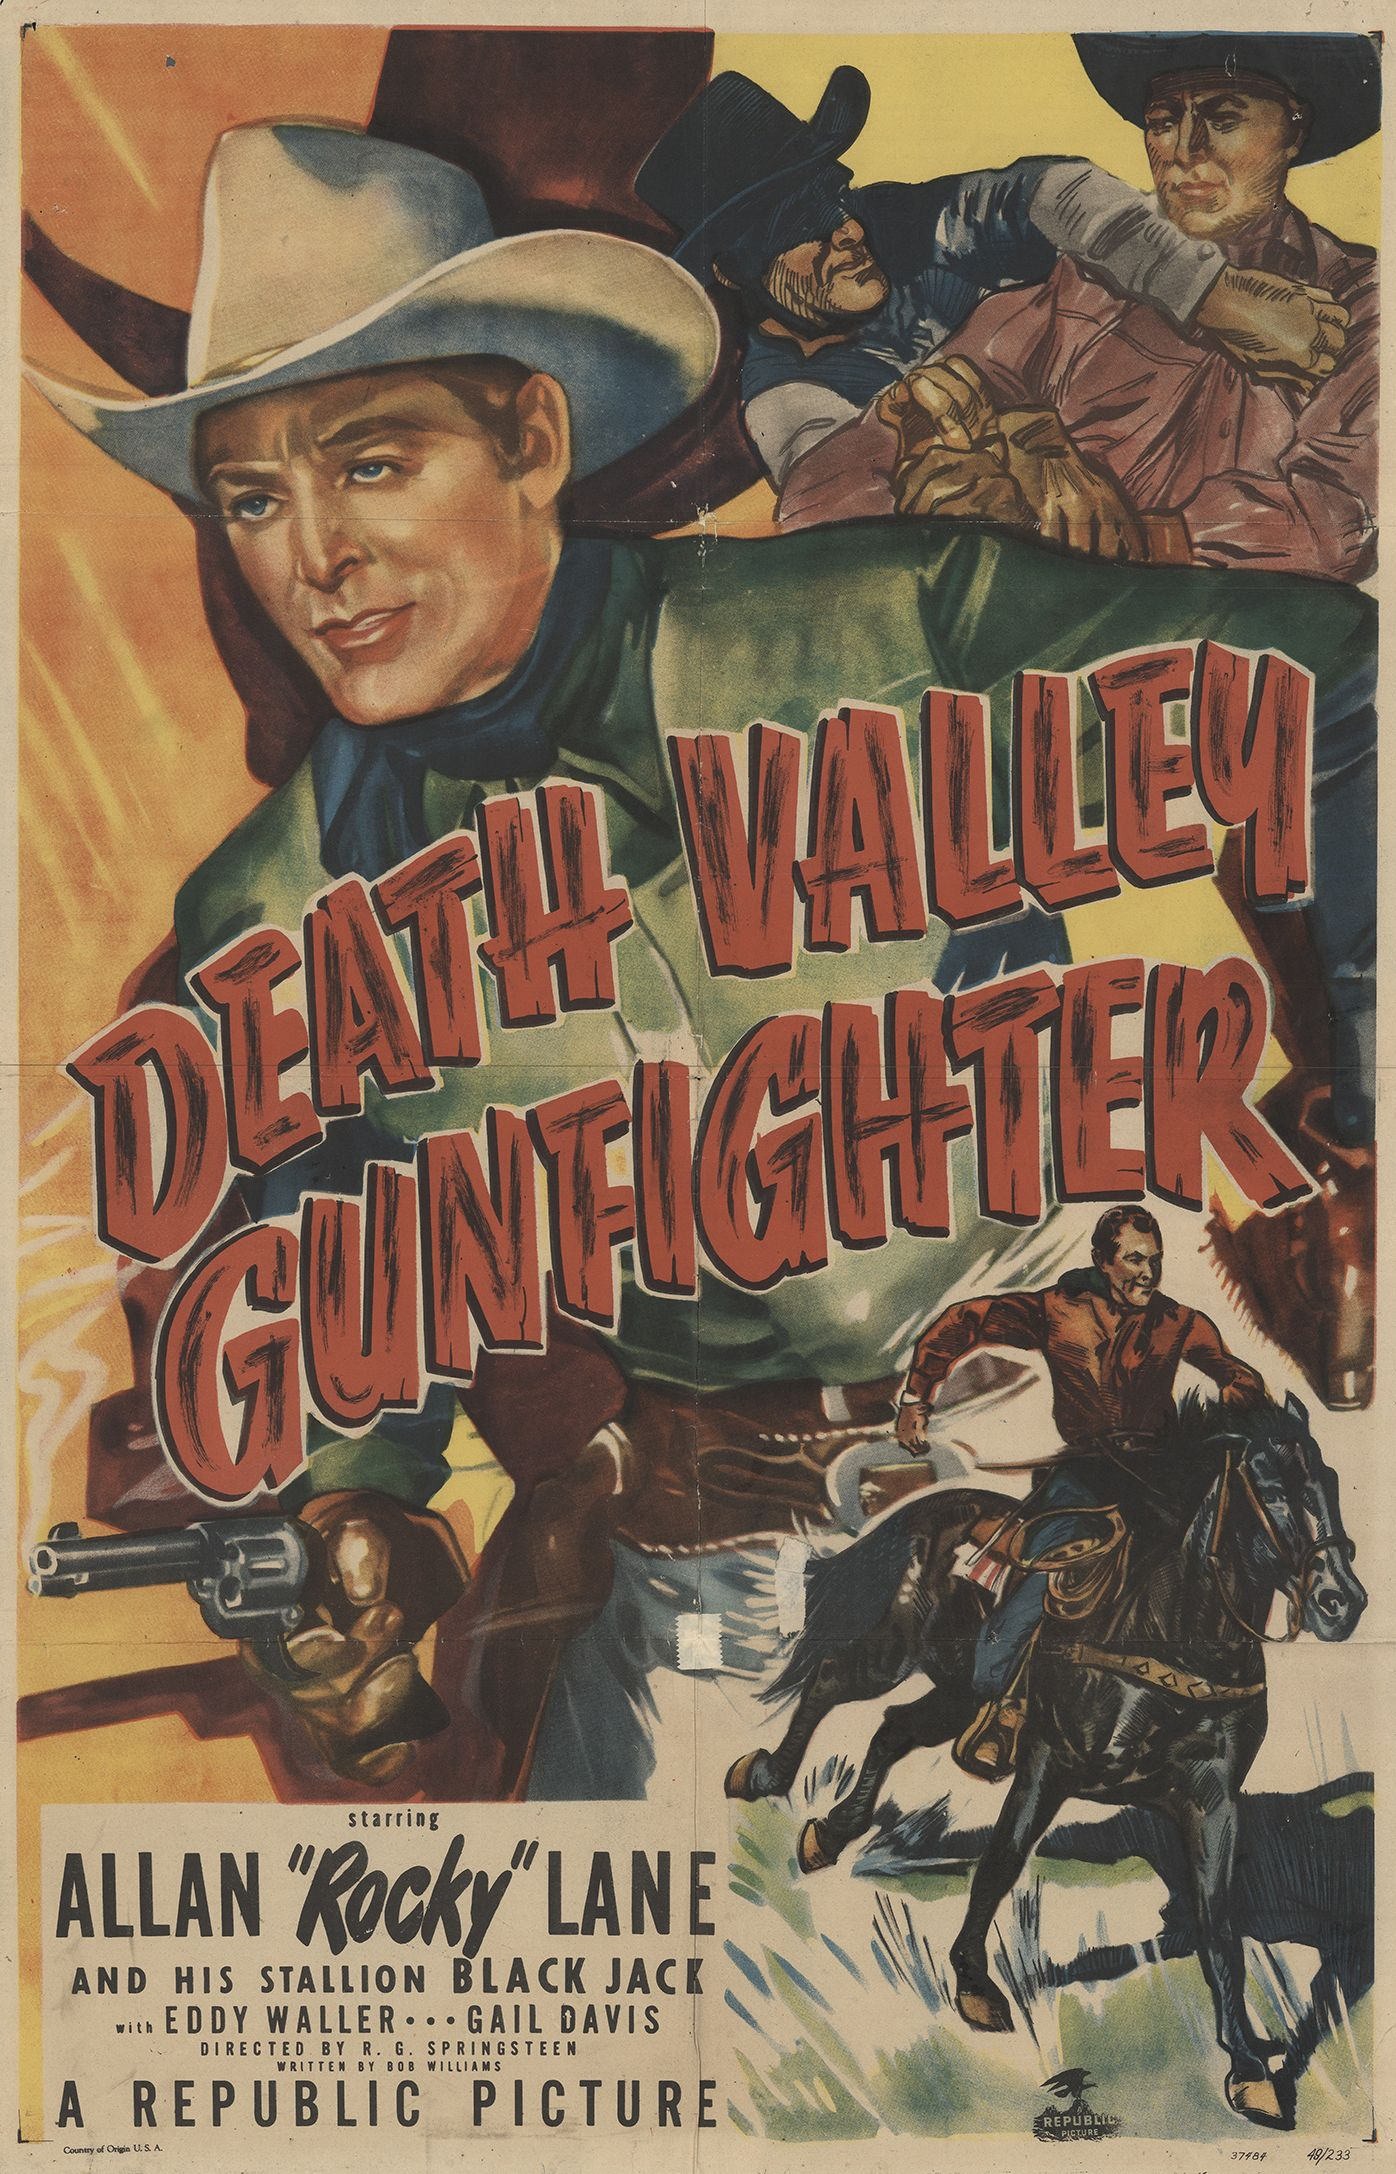 George Chesebro, Allan Lane, and Black Jack in Death Valley Gunfighter (1949)